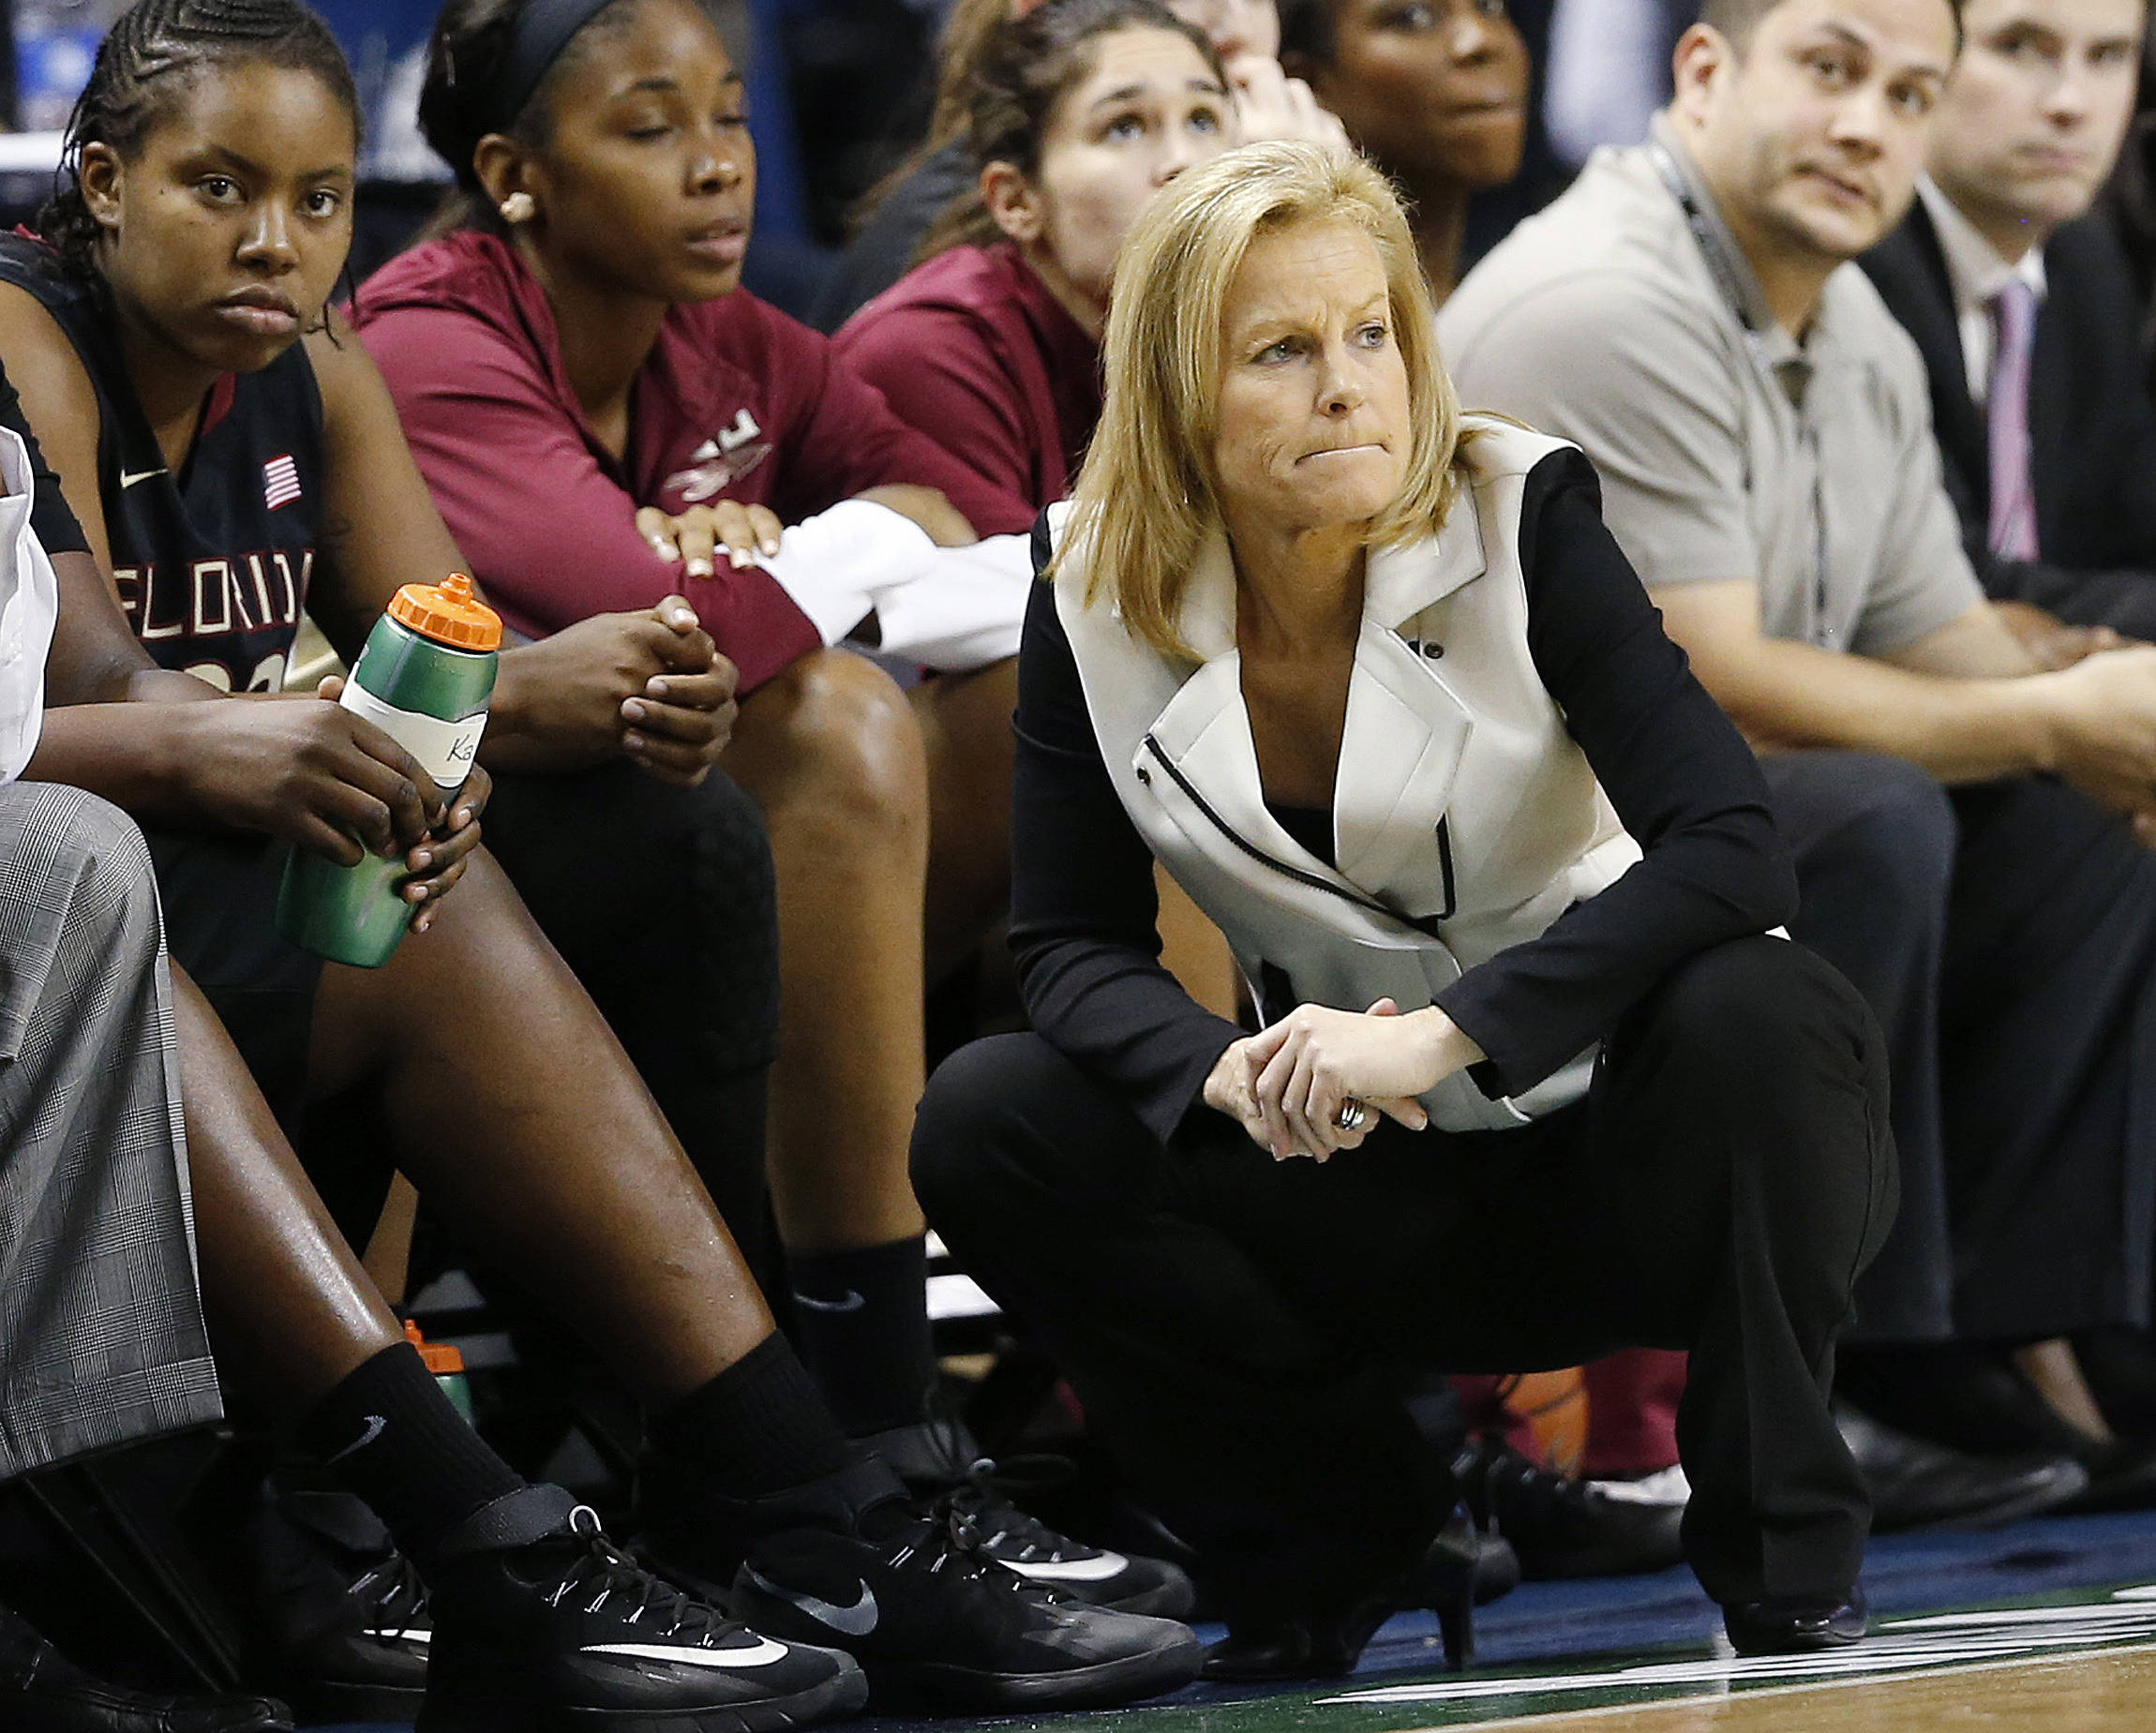 Mar 7, 2014; Greensboro, NC, USA; Florida State head coach Sue Semrau and members of the Florida State bench react against Notre Dame at Greensboro Coliseum. Ellen Ozier-USA TODAY Sports